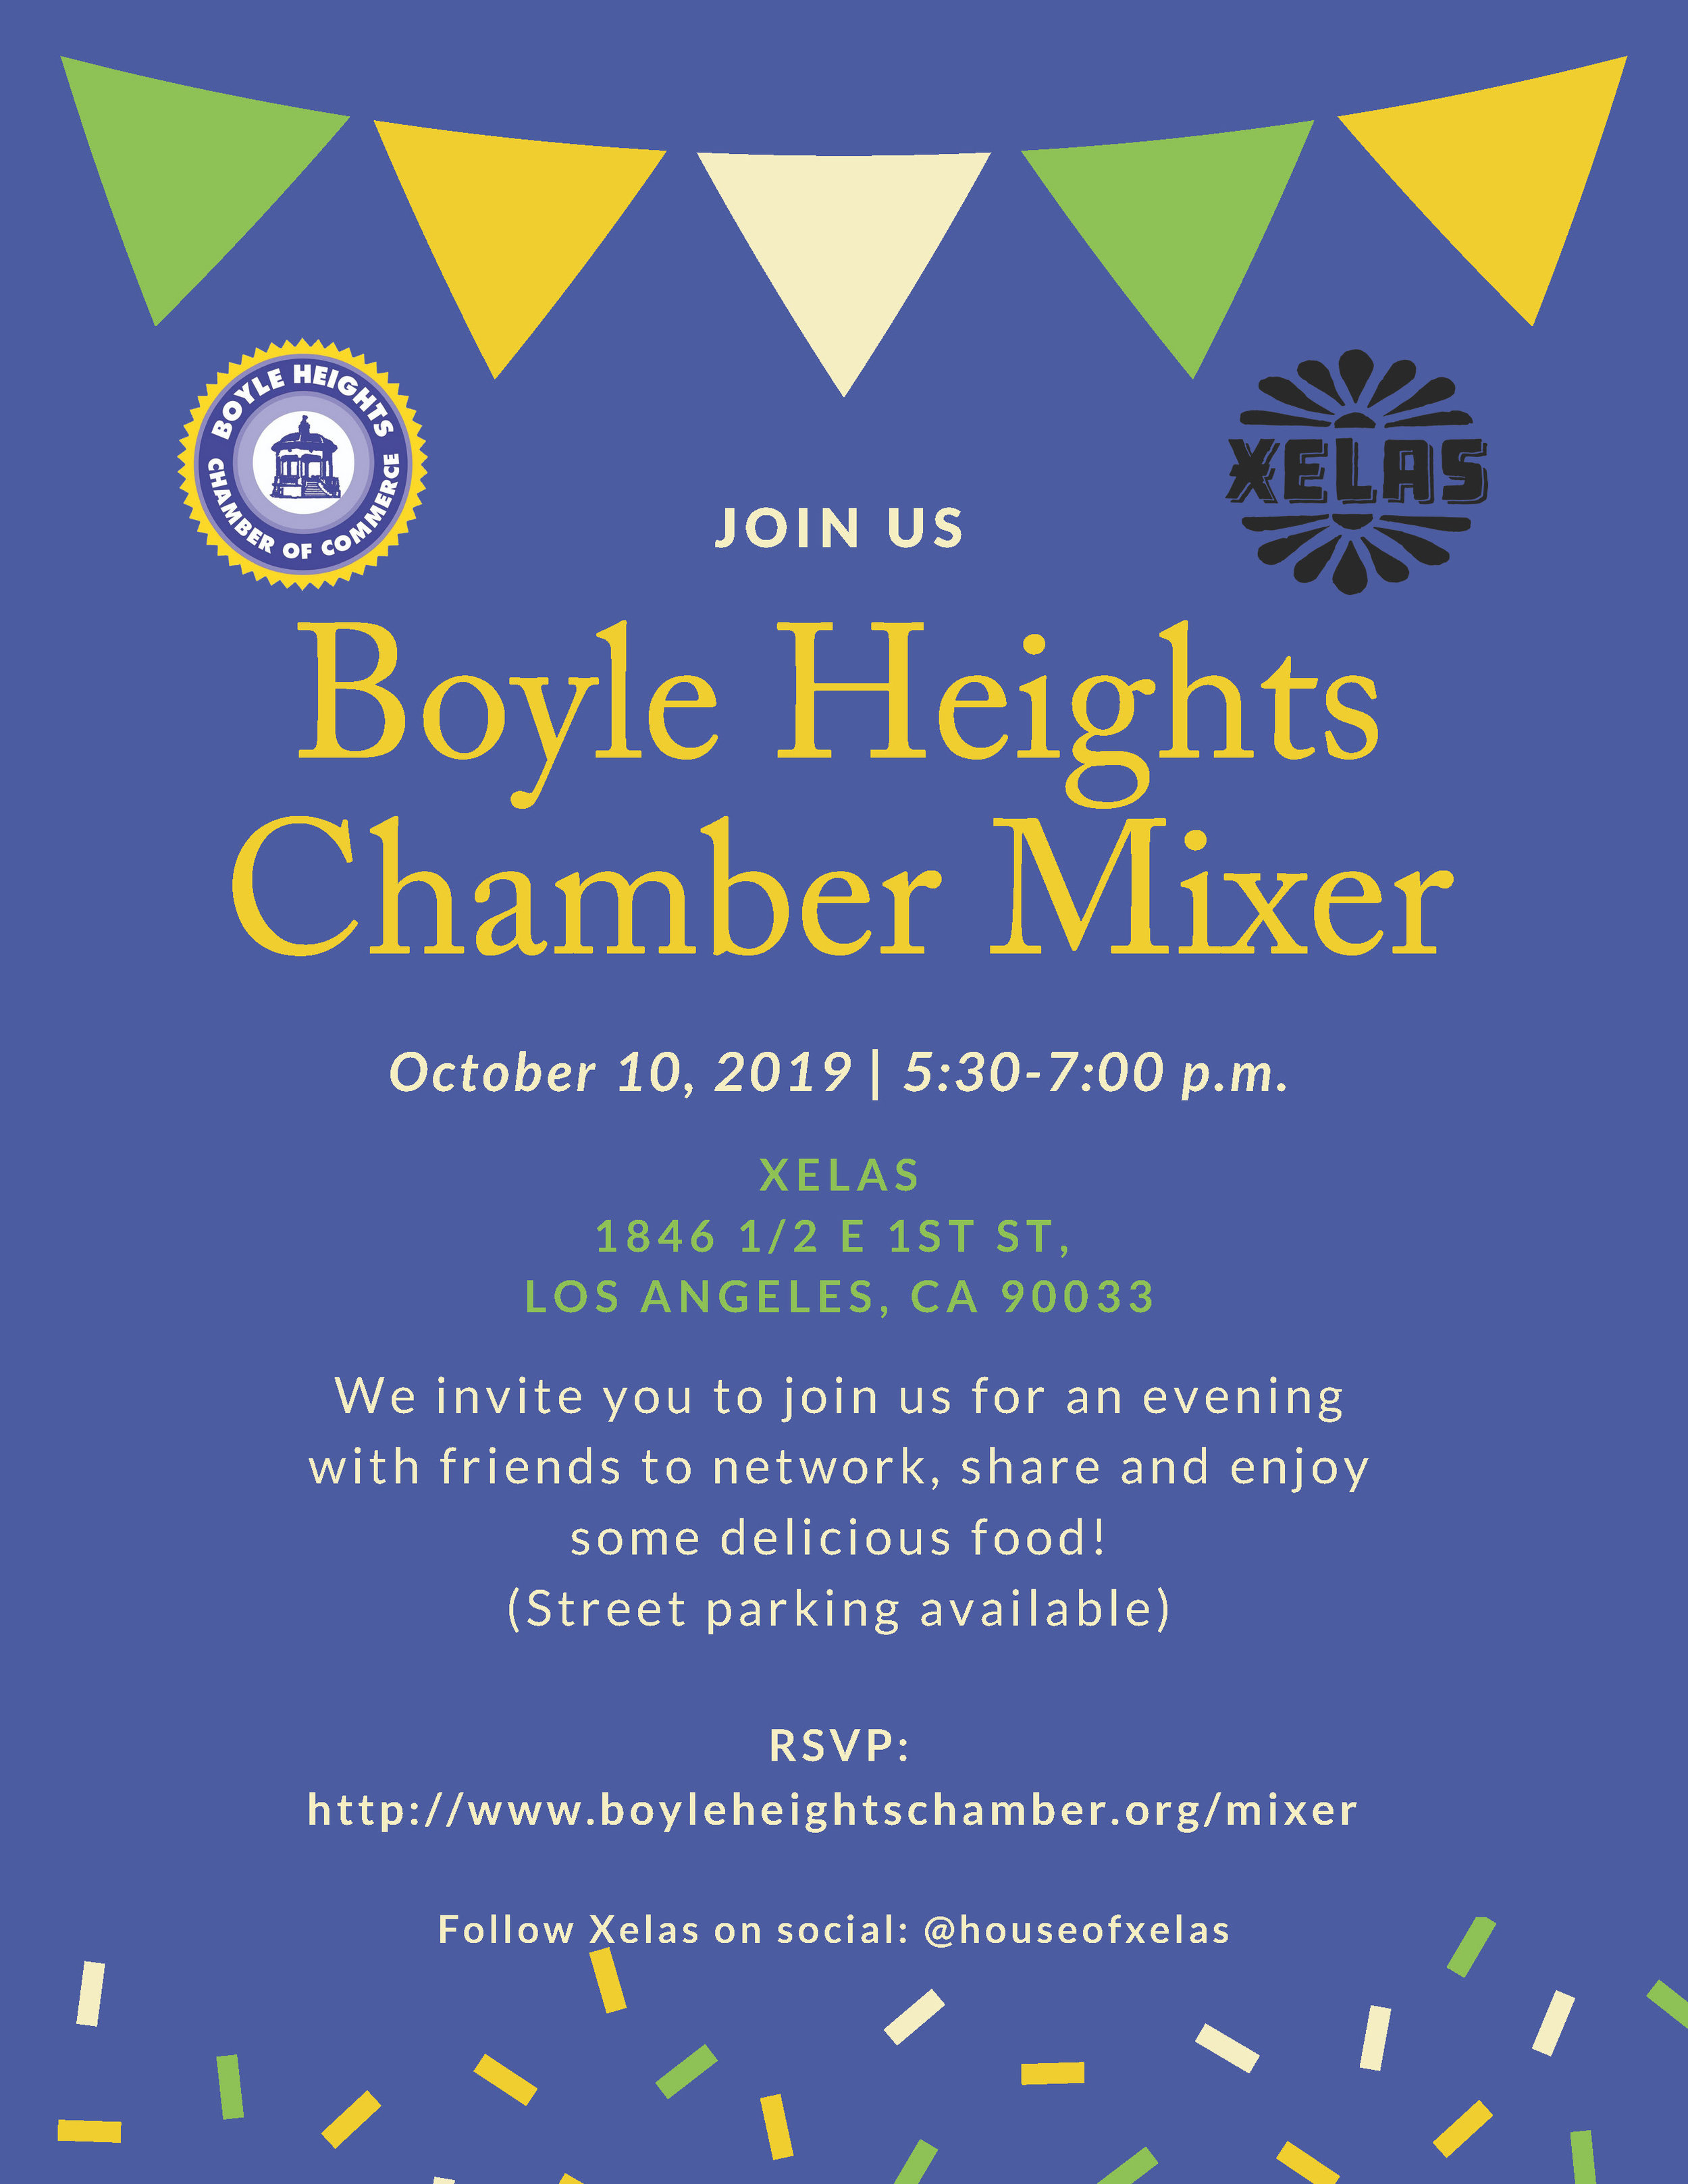 Join Us for the our next Member Mixer! - October 10, 2019, 5:30pa - 7:00pXelas1846 1/2 E. 1st Street, Los Angeles, CA 90033Please RSVP HERE.